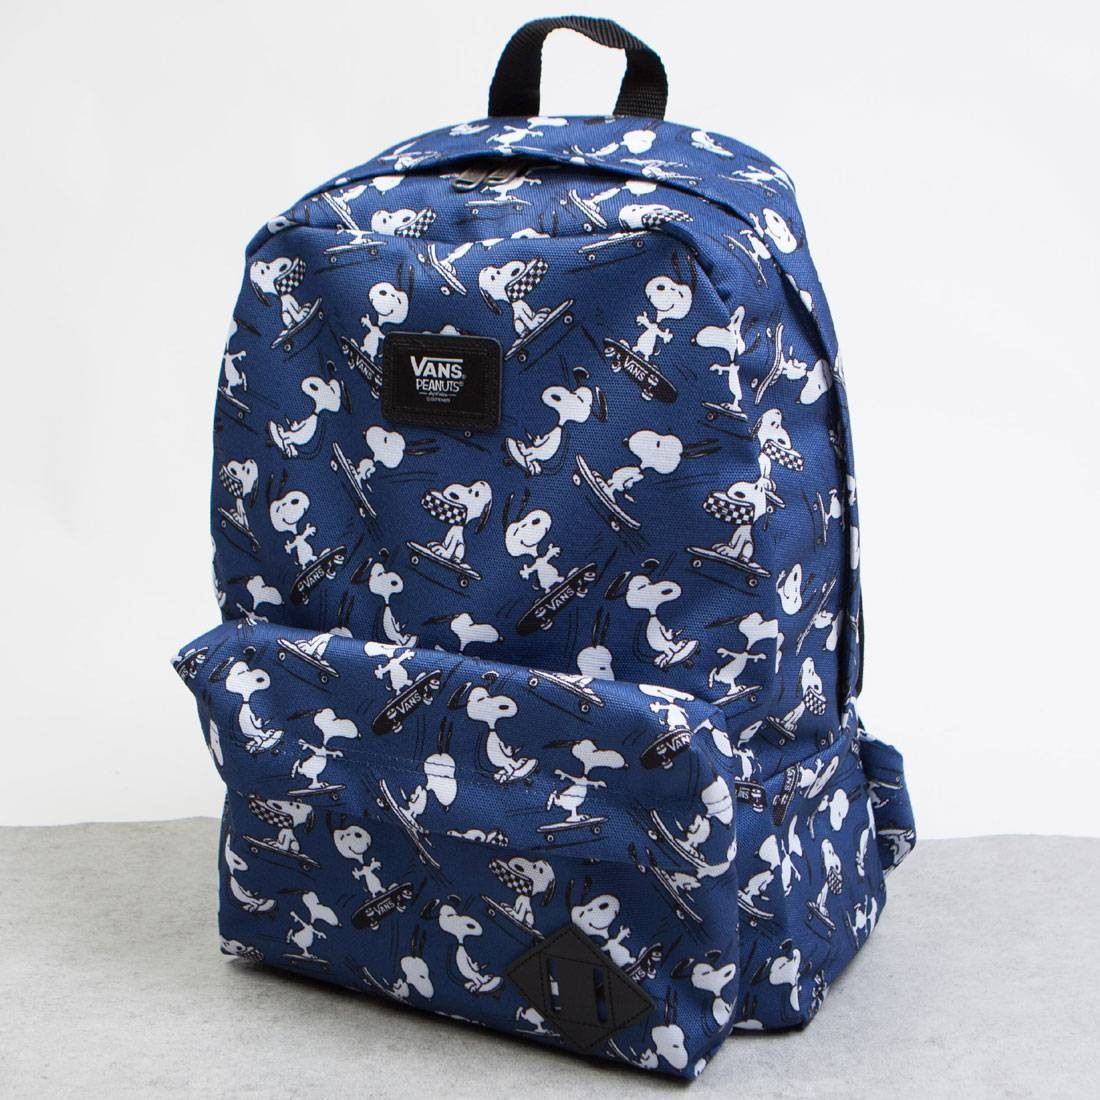 Vans x Peanuts Old Skool II Backpack navy